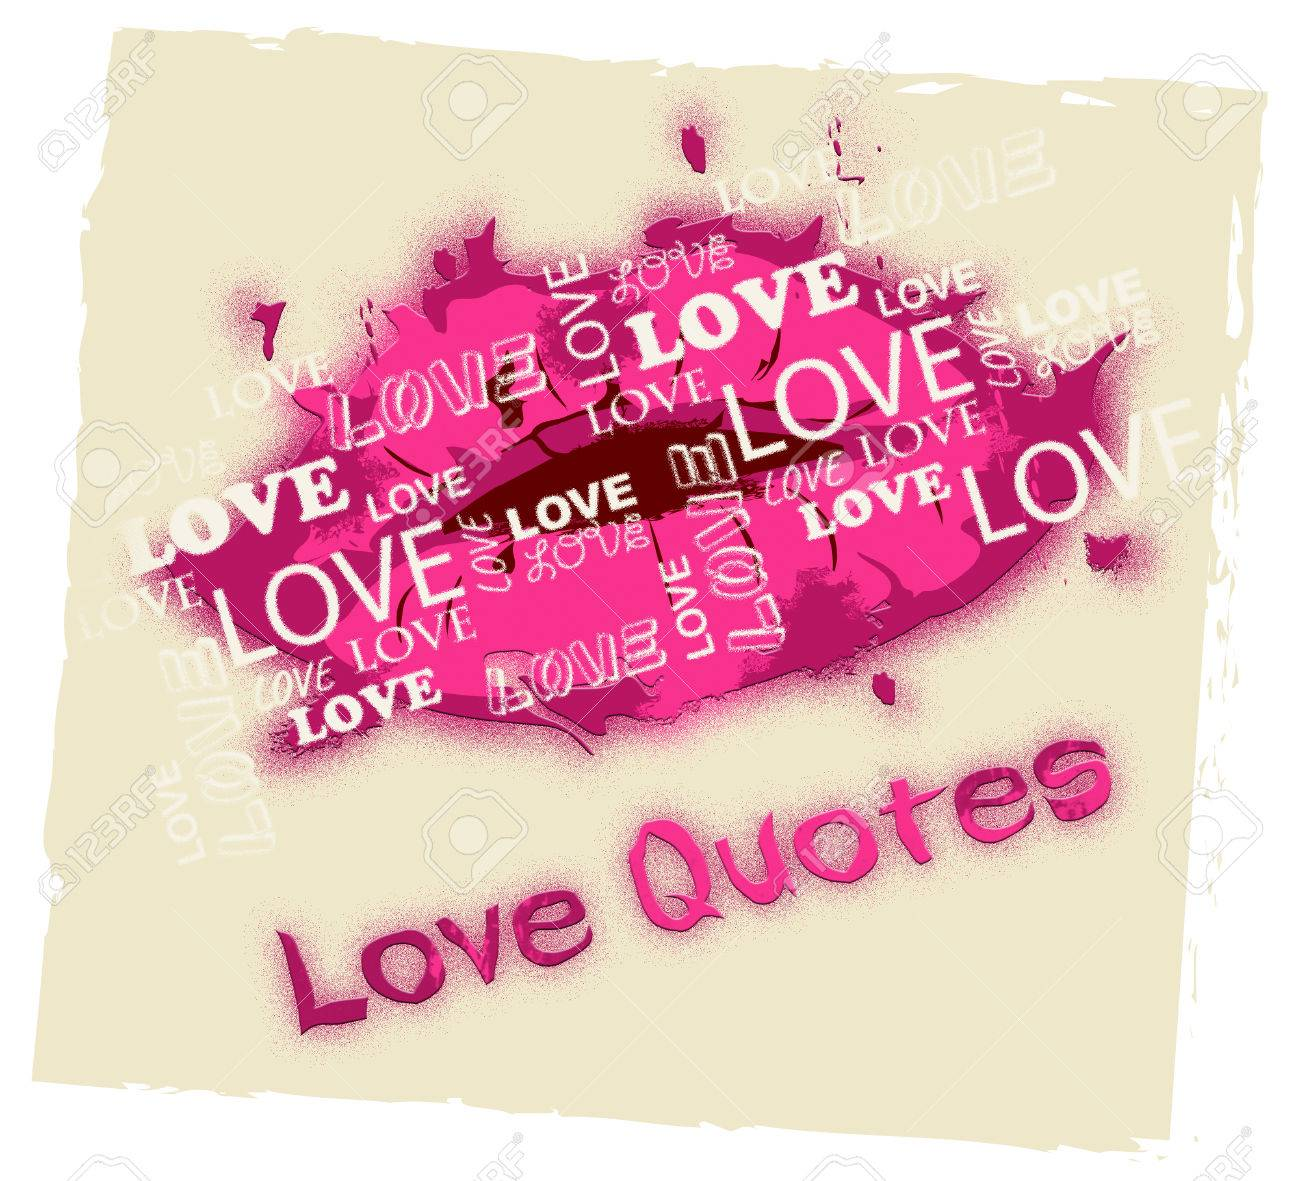 Love Quotes Lips Shows Loving Inspiration And Affection Stock Photo